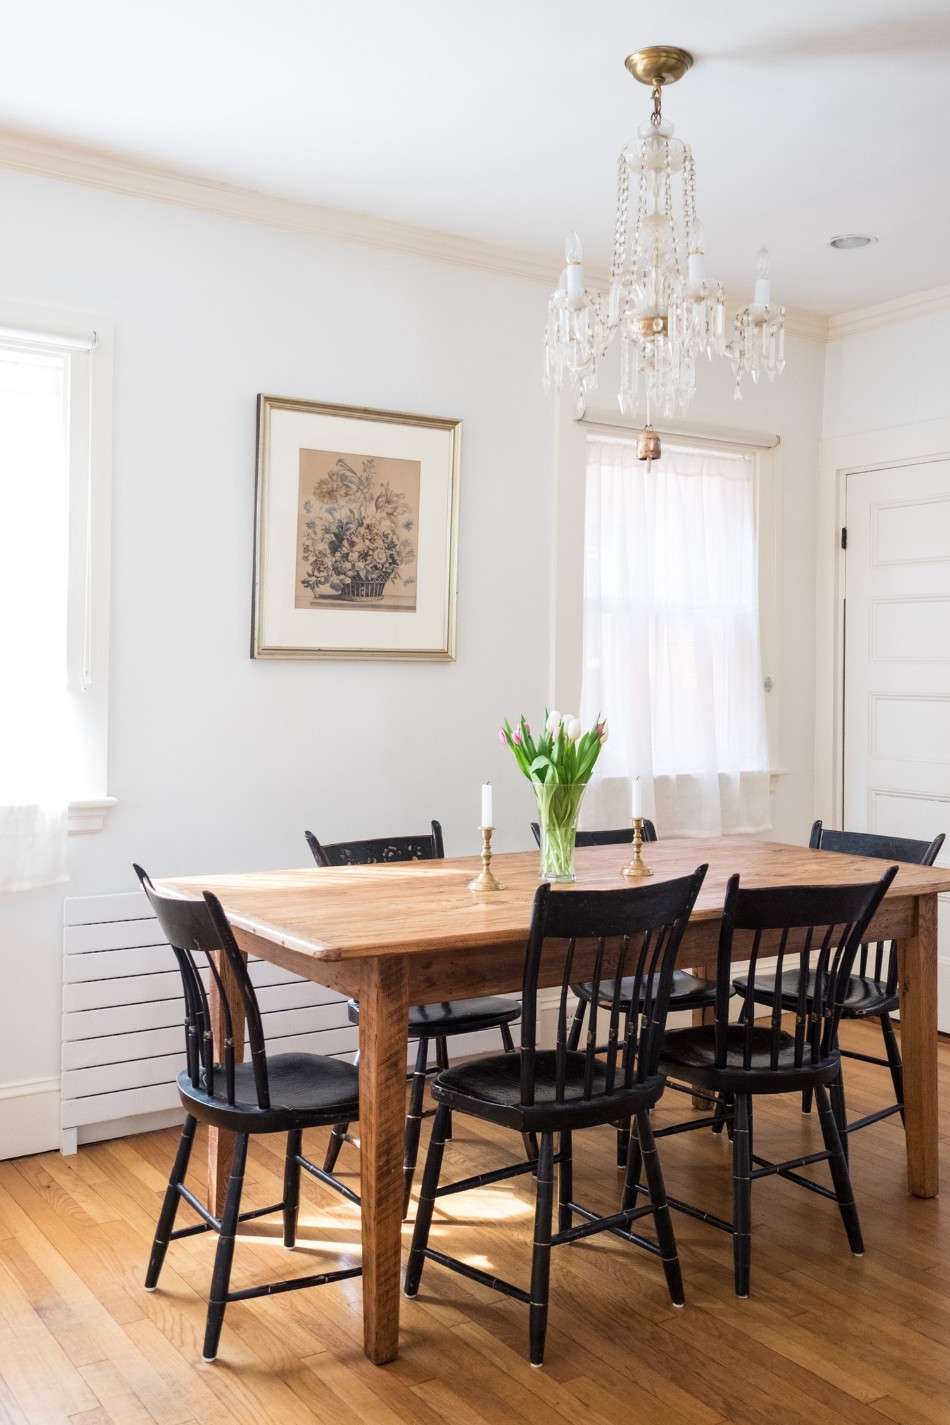 dining table How To Mix and Match Chairs With Your Dining Table 1cf425bf2f8e7620a21a2d9f7debdc27c3dfaff4 1